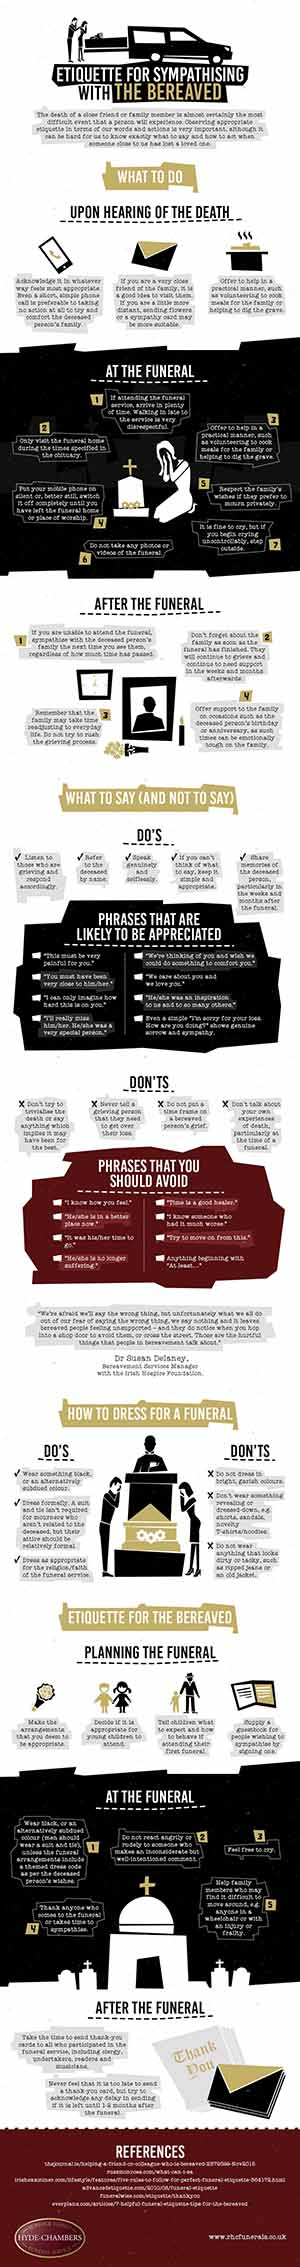 Click to View - Funeral Etiquette Infographic - Courtesy of RHC Funerals